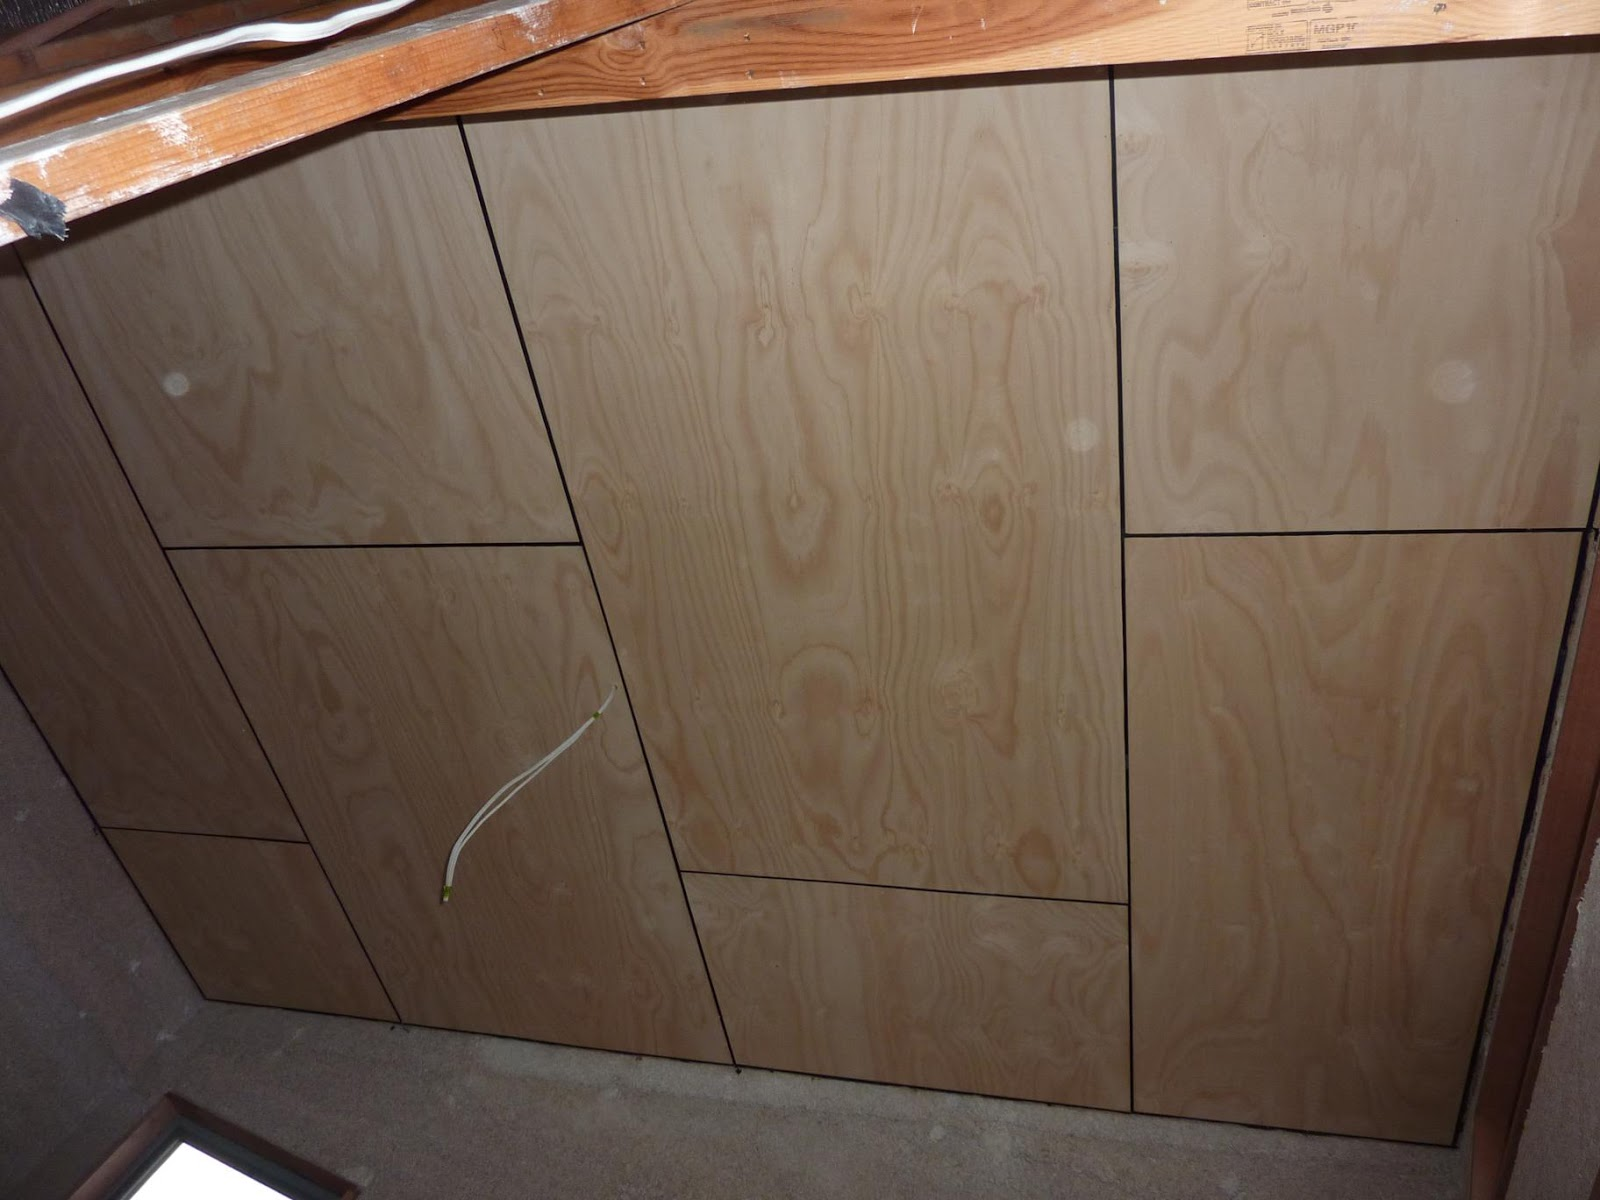 Culburra Hemp House: Lock up and plywood ceiling installation